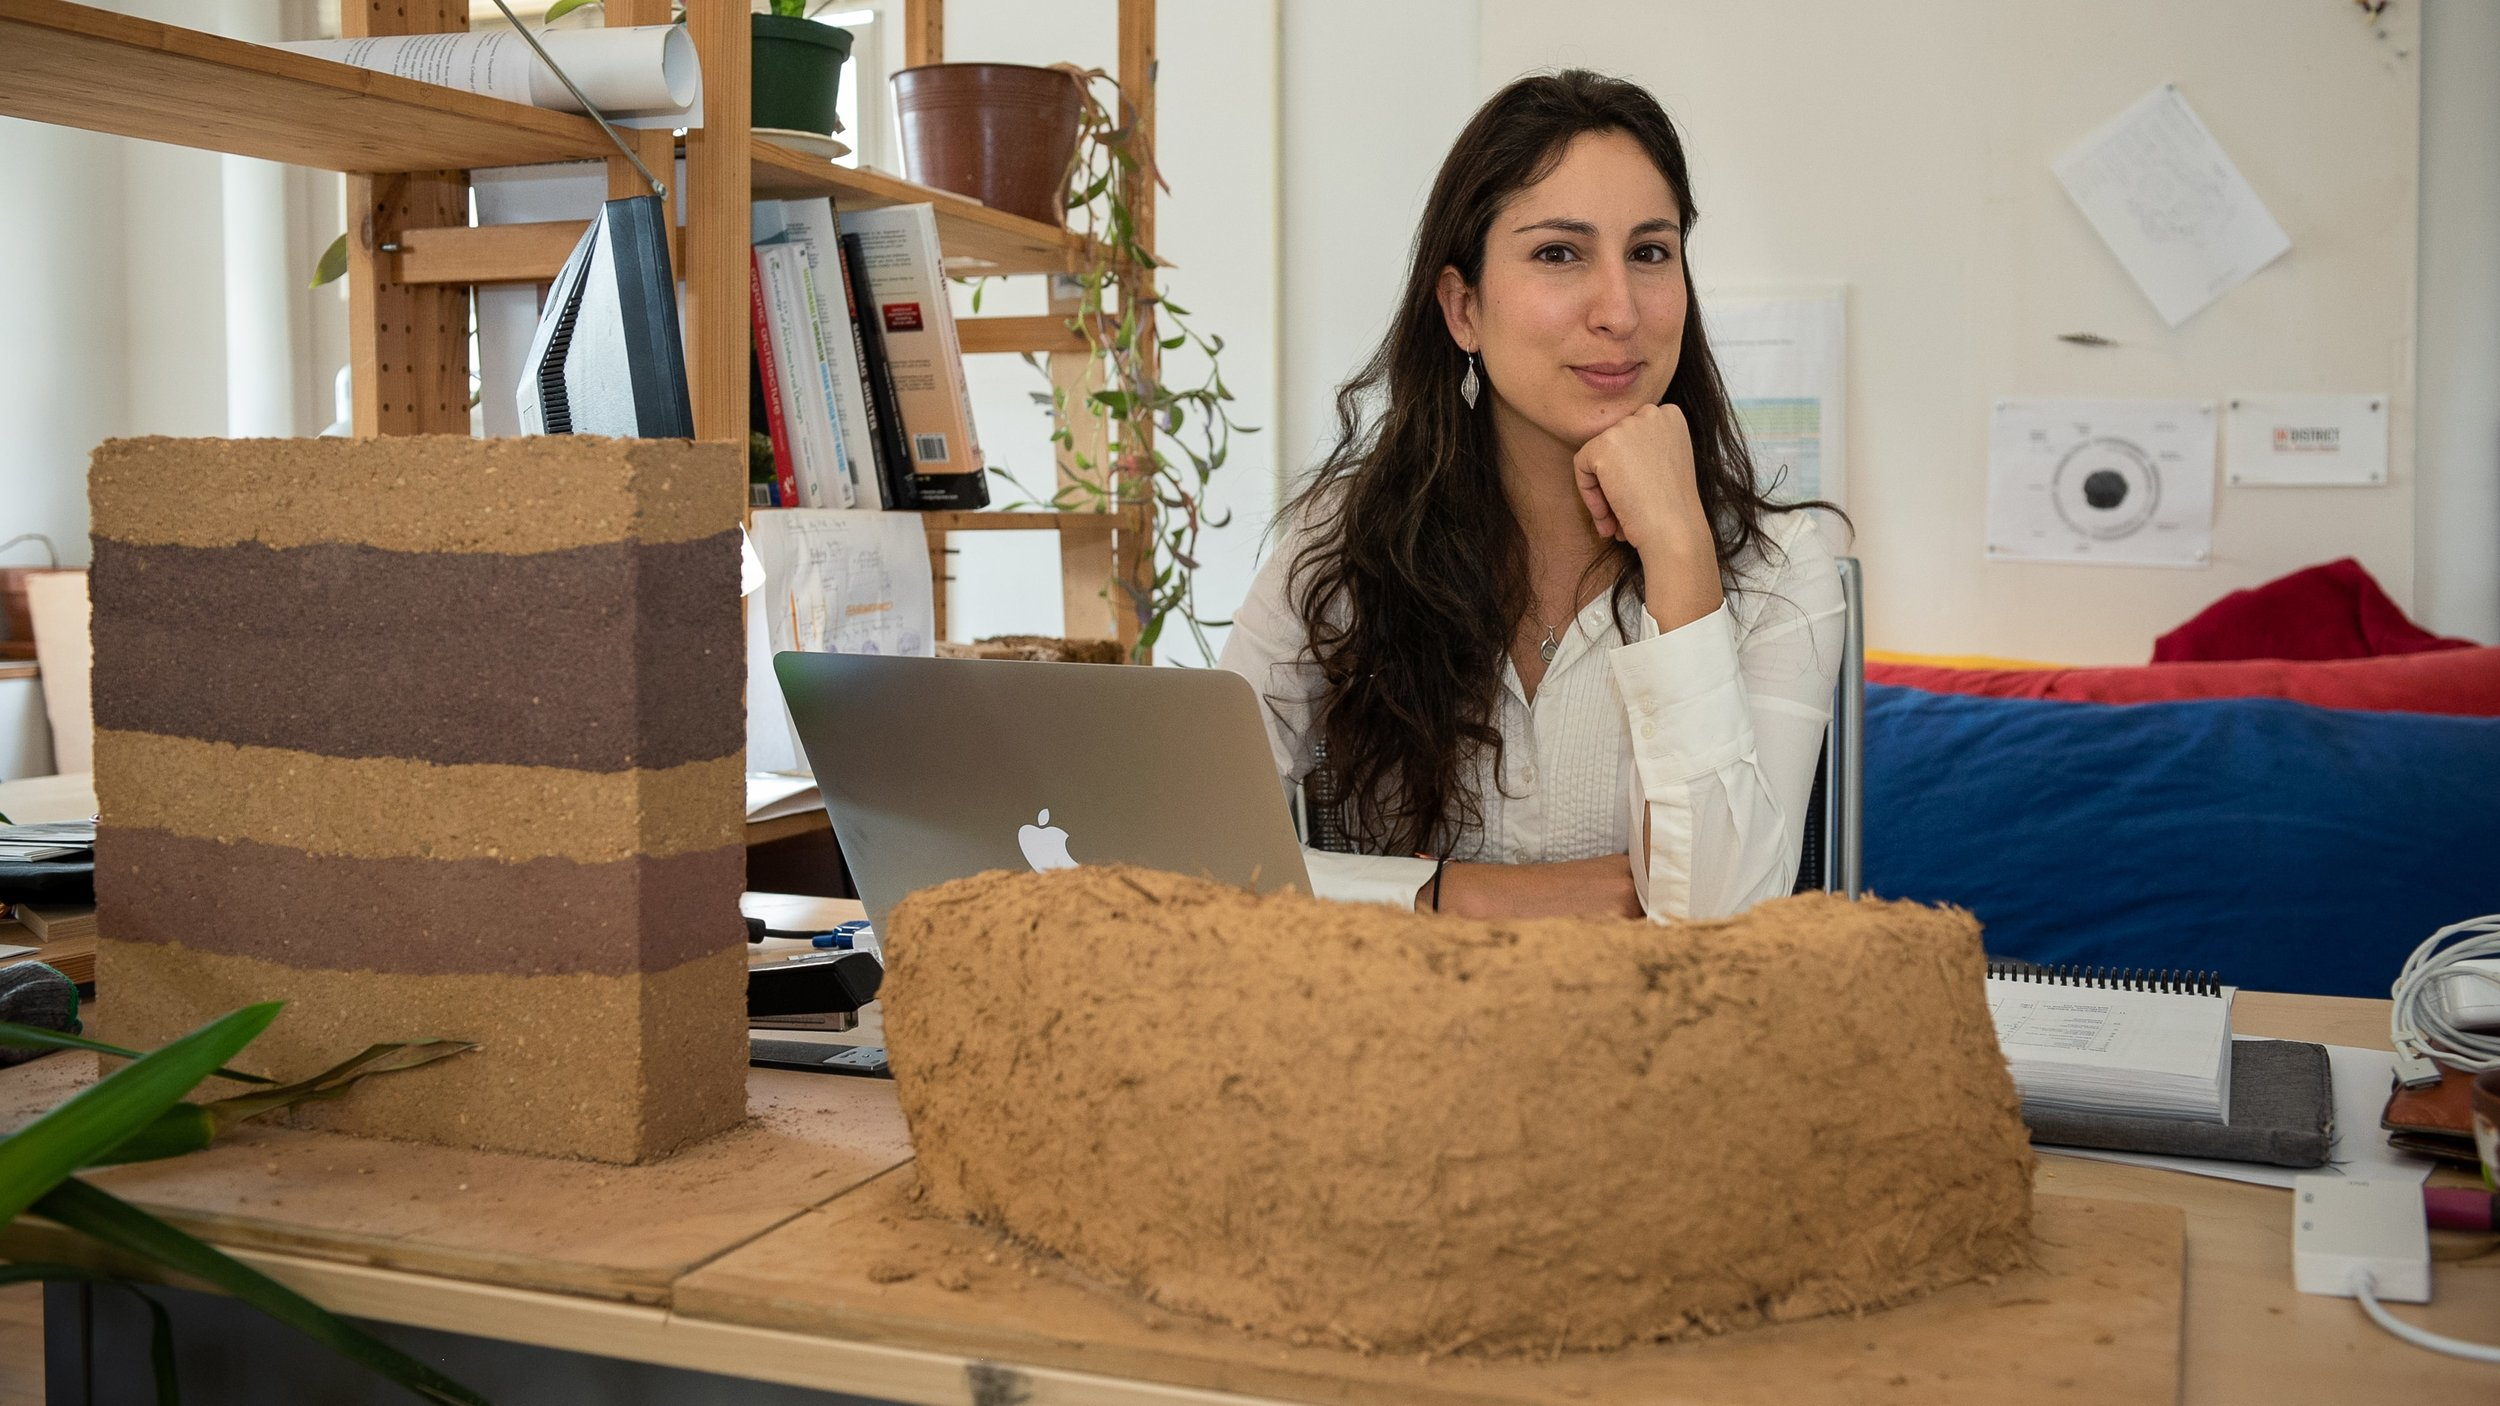 Lola Ben-Alon's research deals with the challenges of using earthen building materials, which offer sustainable alternatives to conventional materials used in construction. Image: Carnegie Mellon University